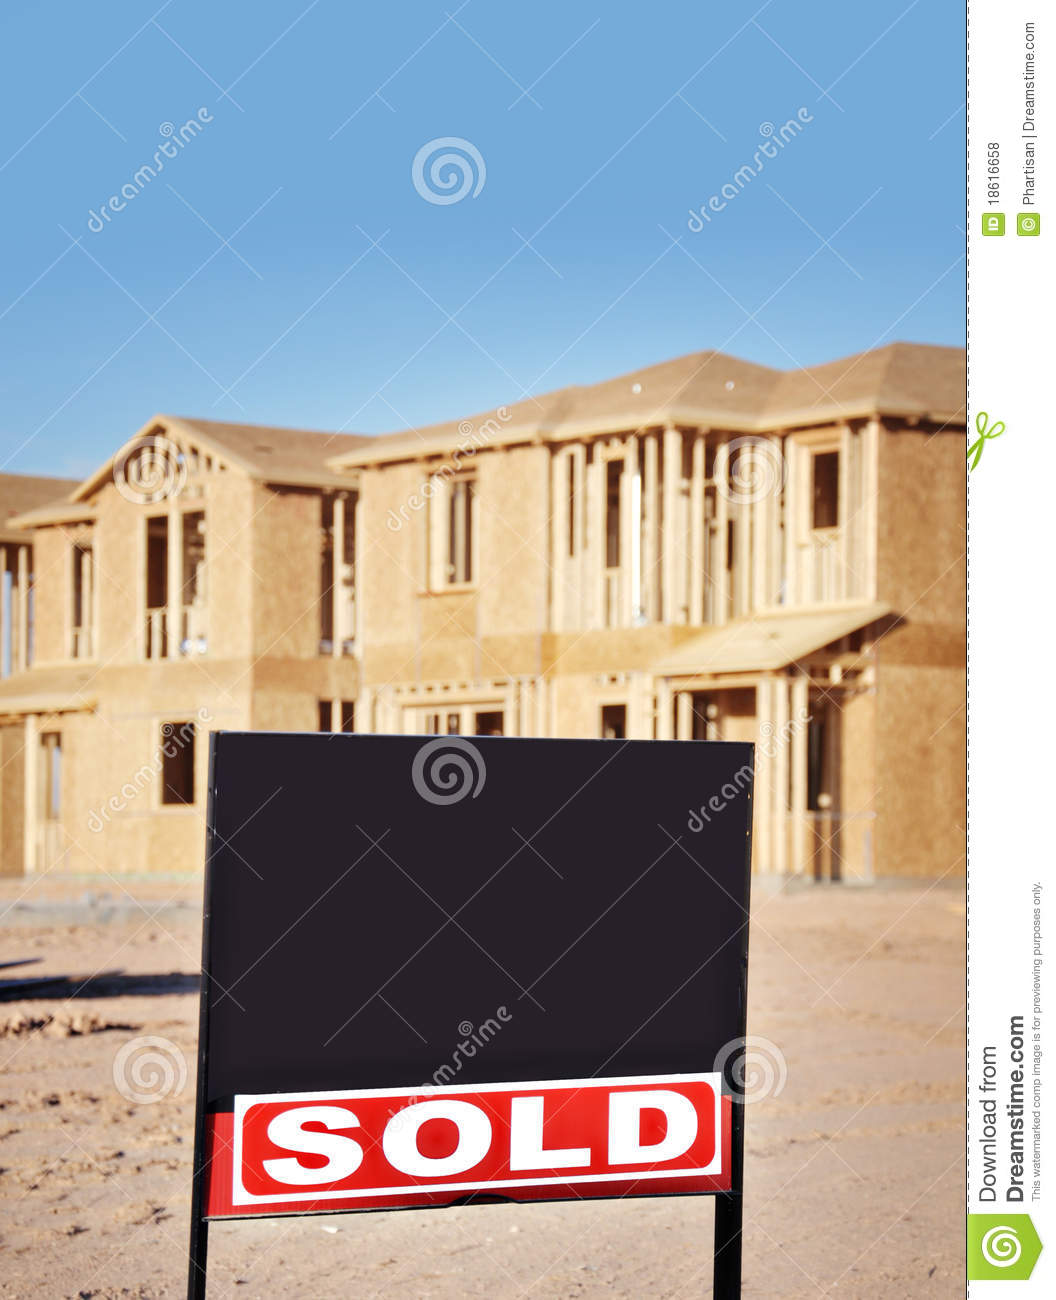 New homes with sold sign royalty free stock photos image for New home sign